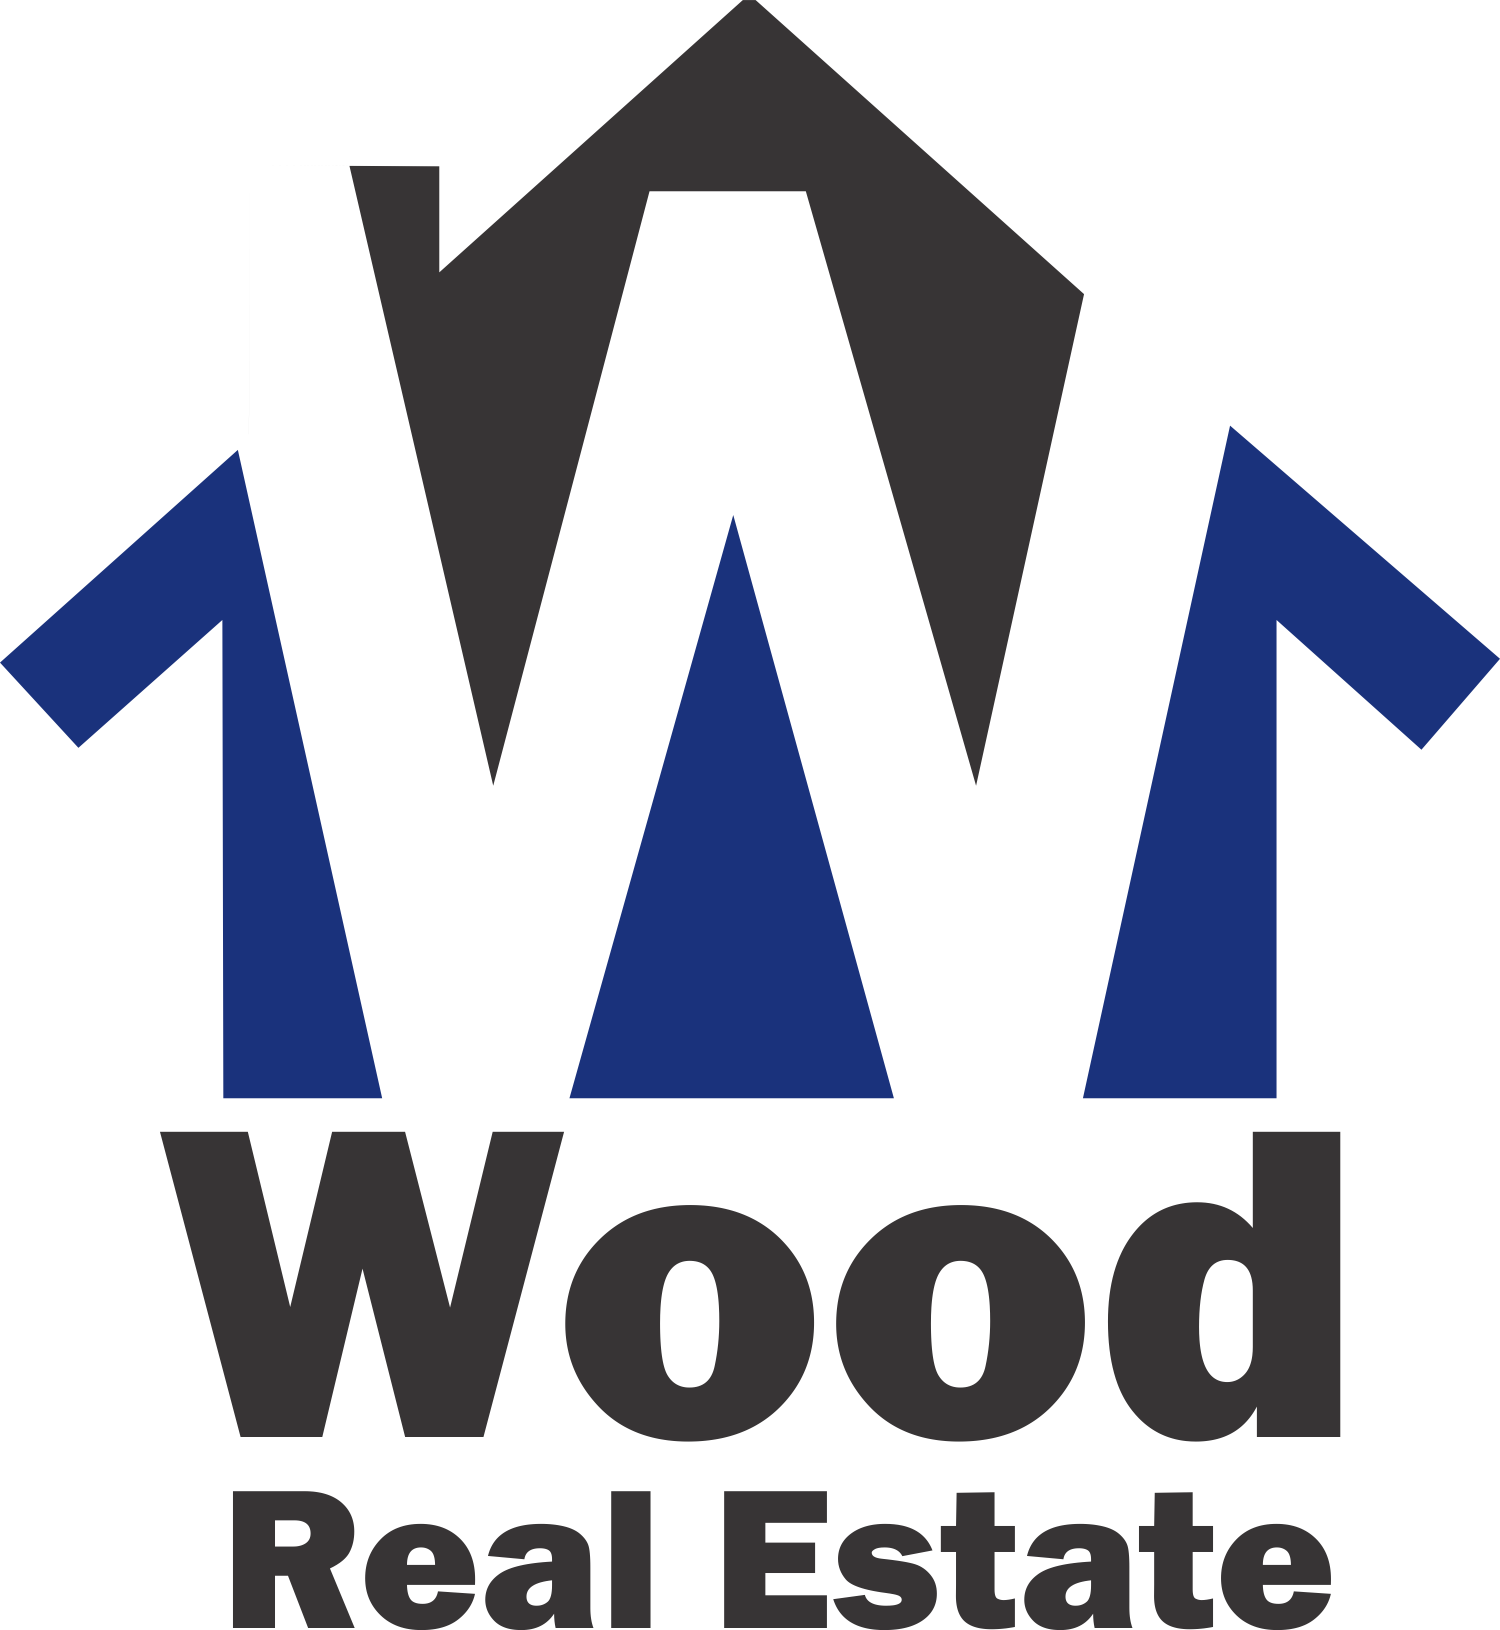 Wood Realty